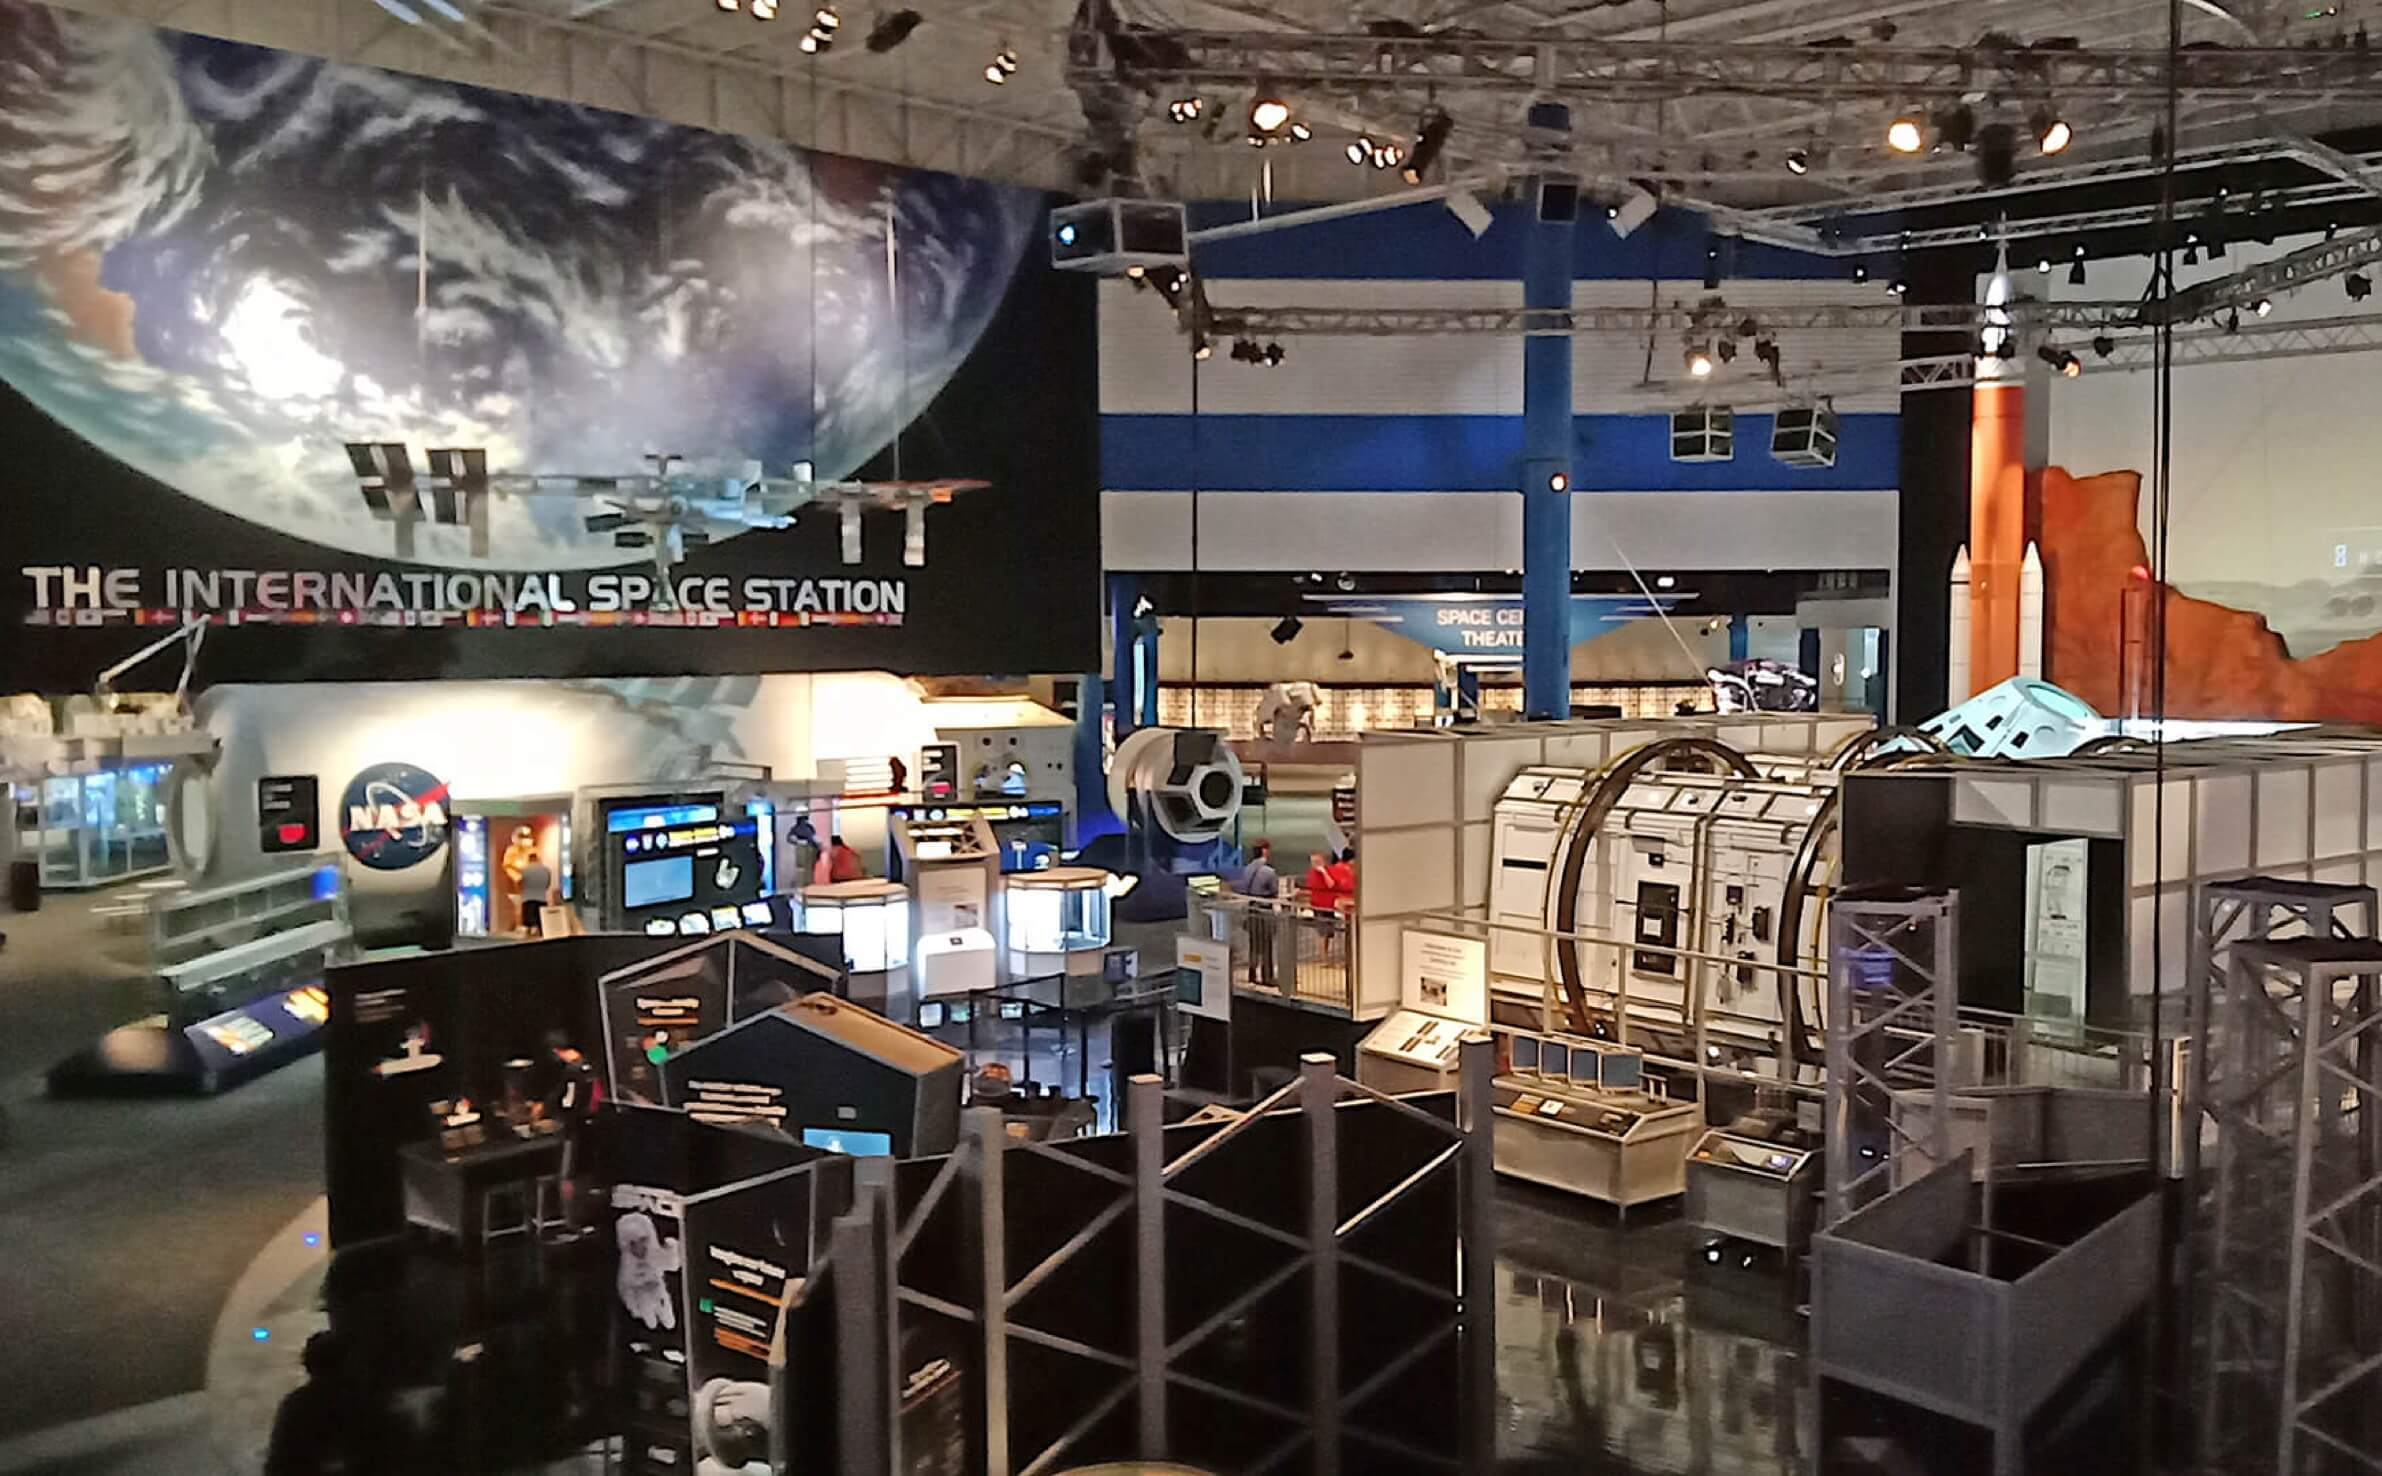 Exhibit about the International Space Station at Space Center Houston